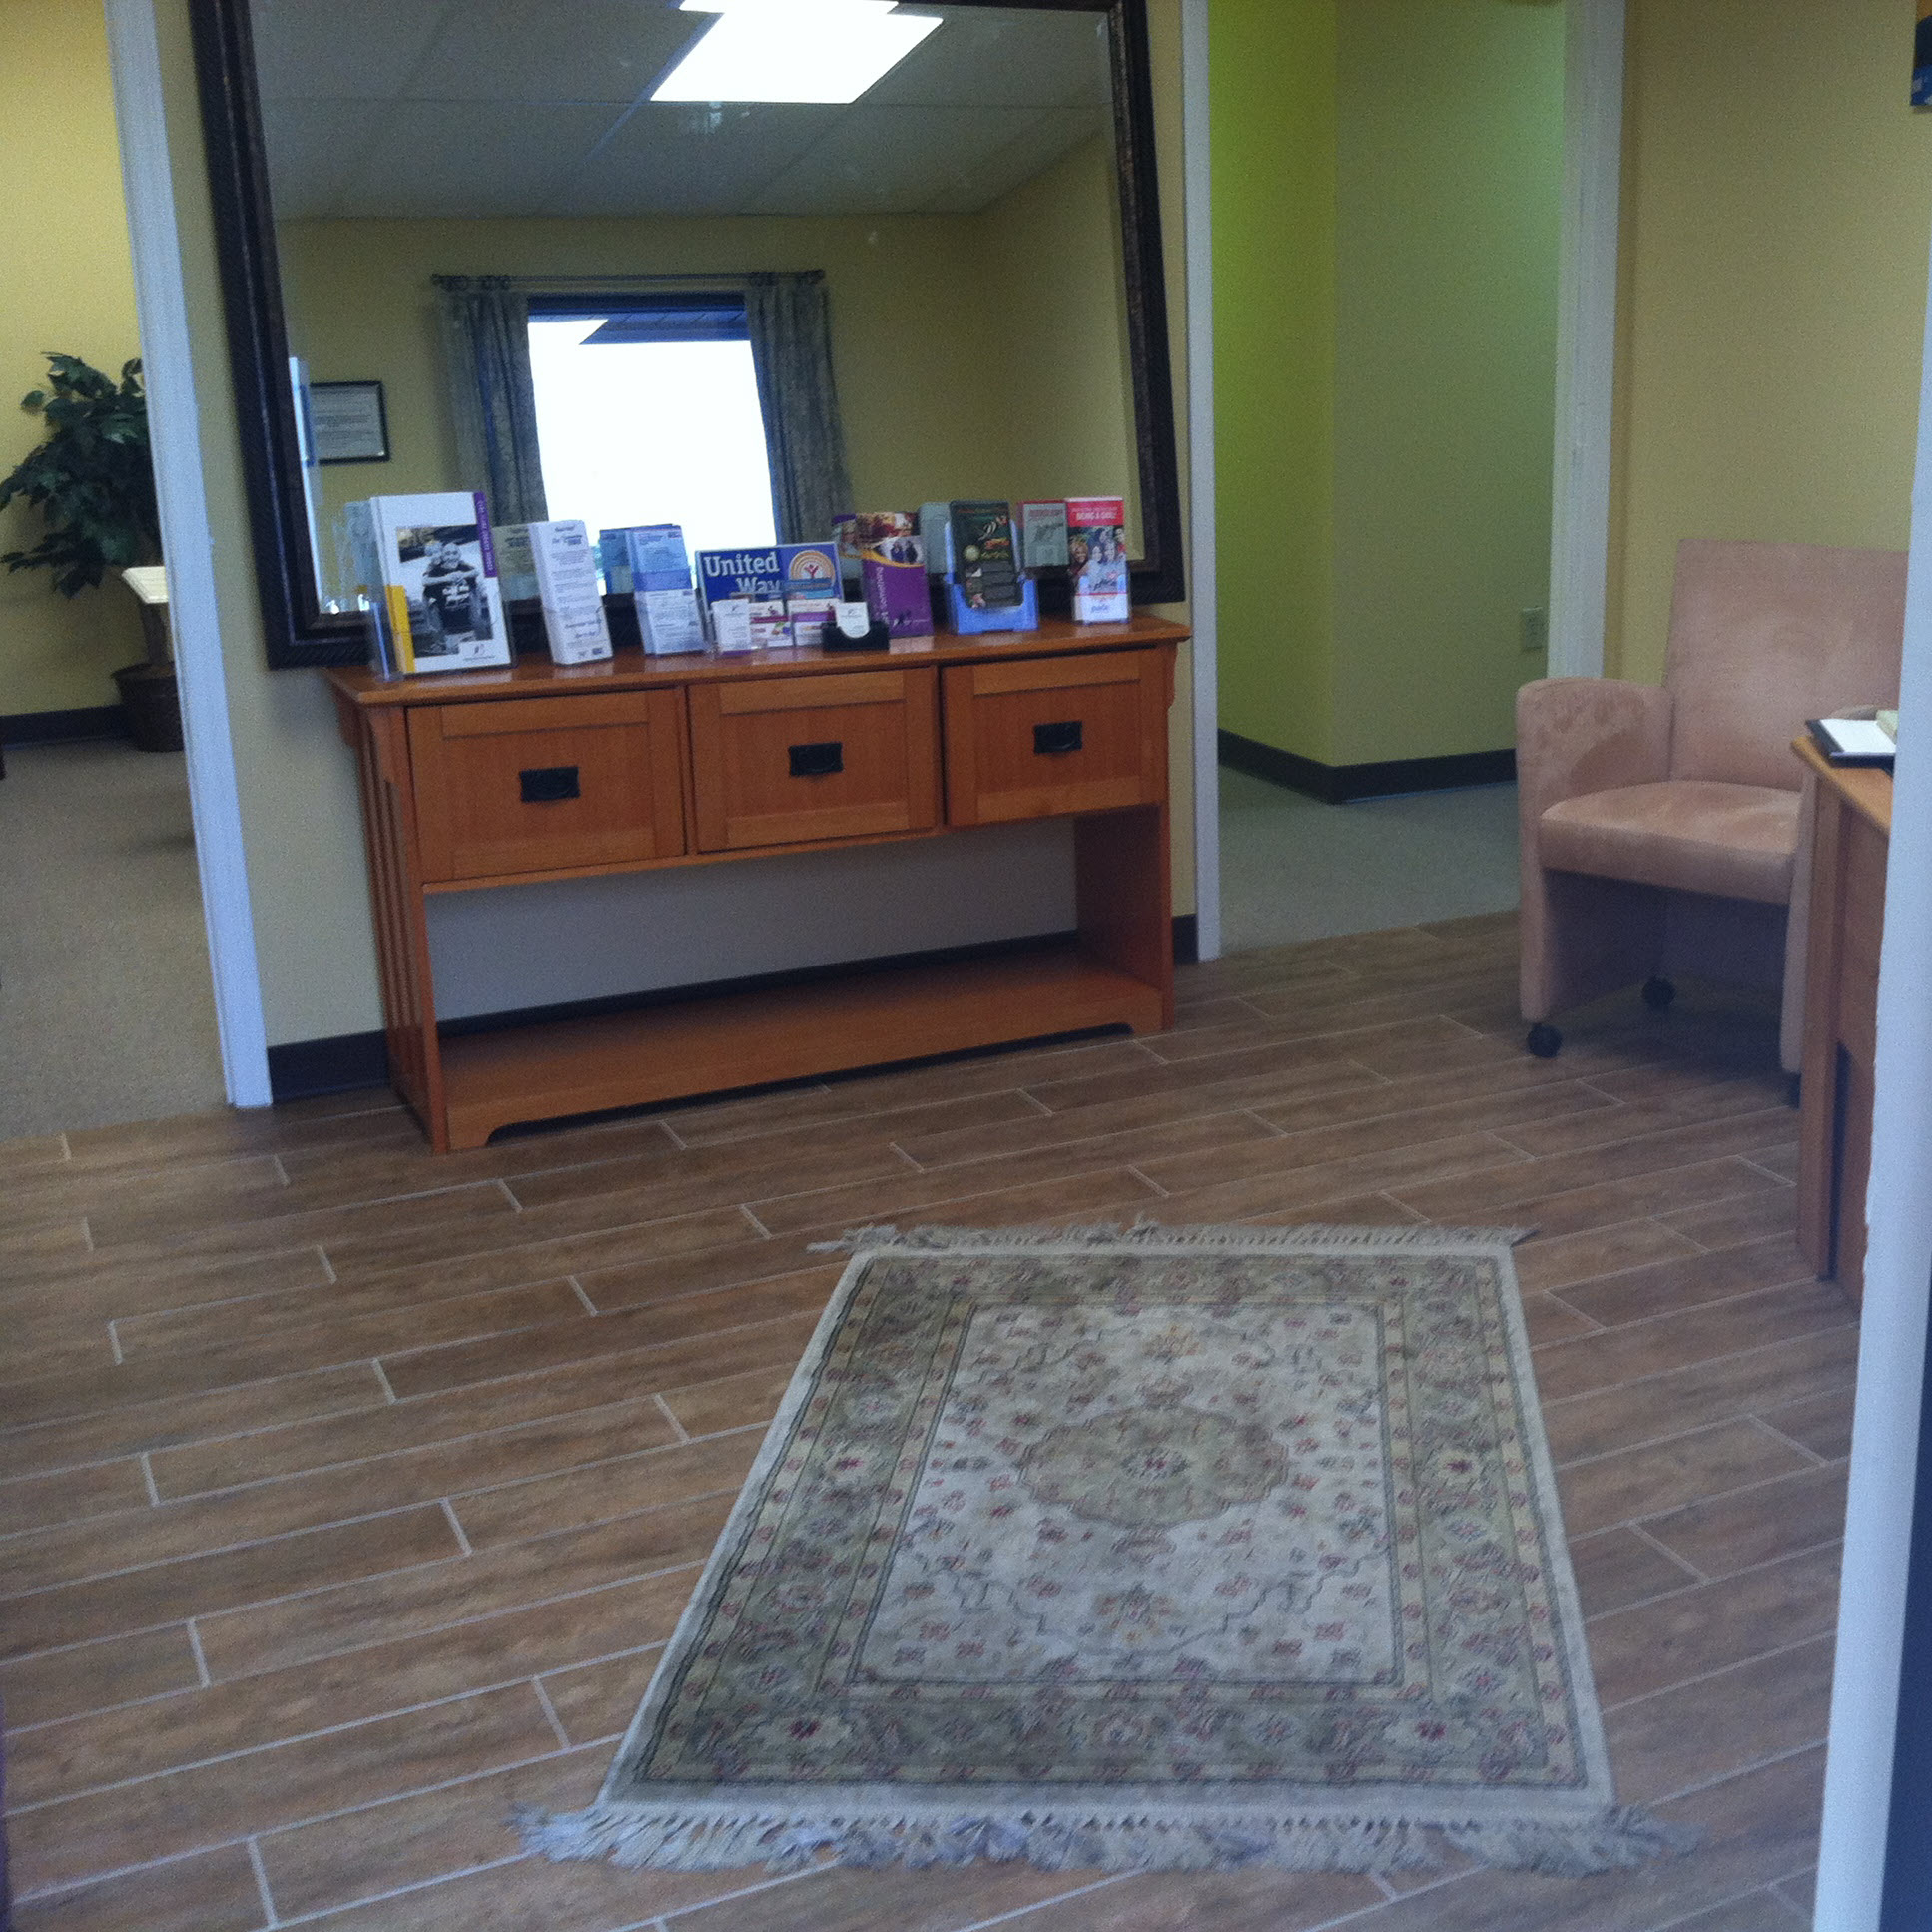 Check out the tile floor in the Big Brothers and Sisters of the Sun Coast-Lee County office.